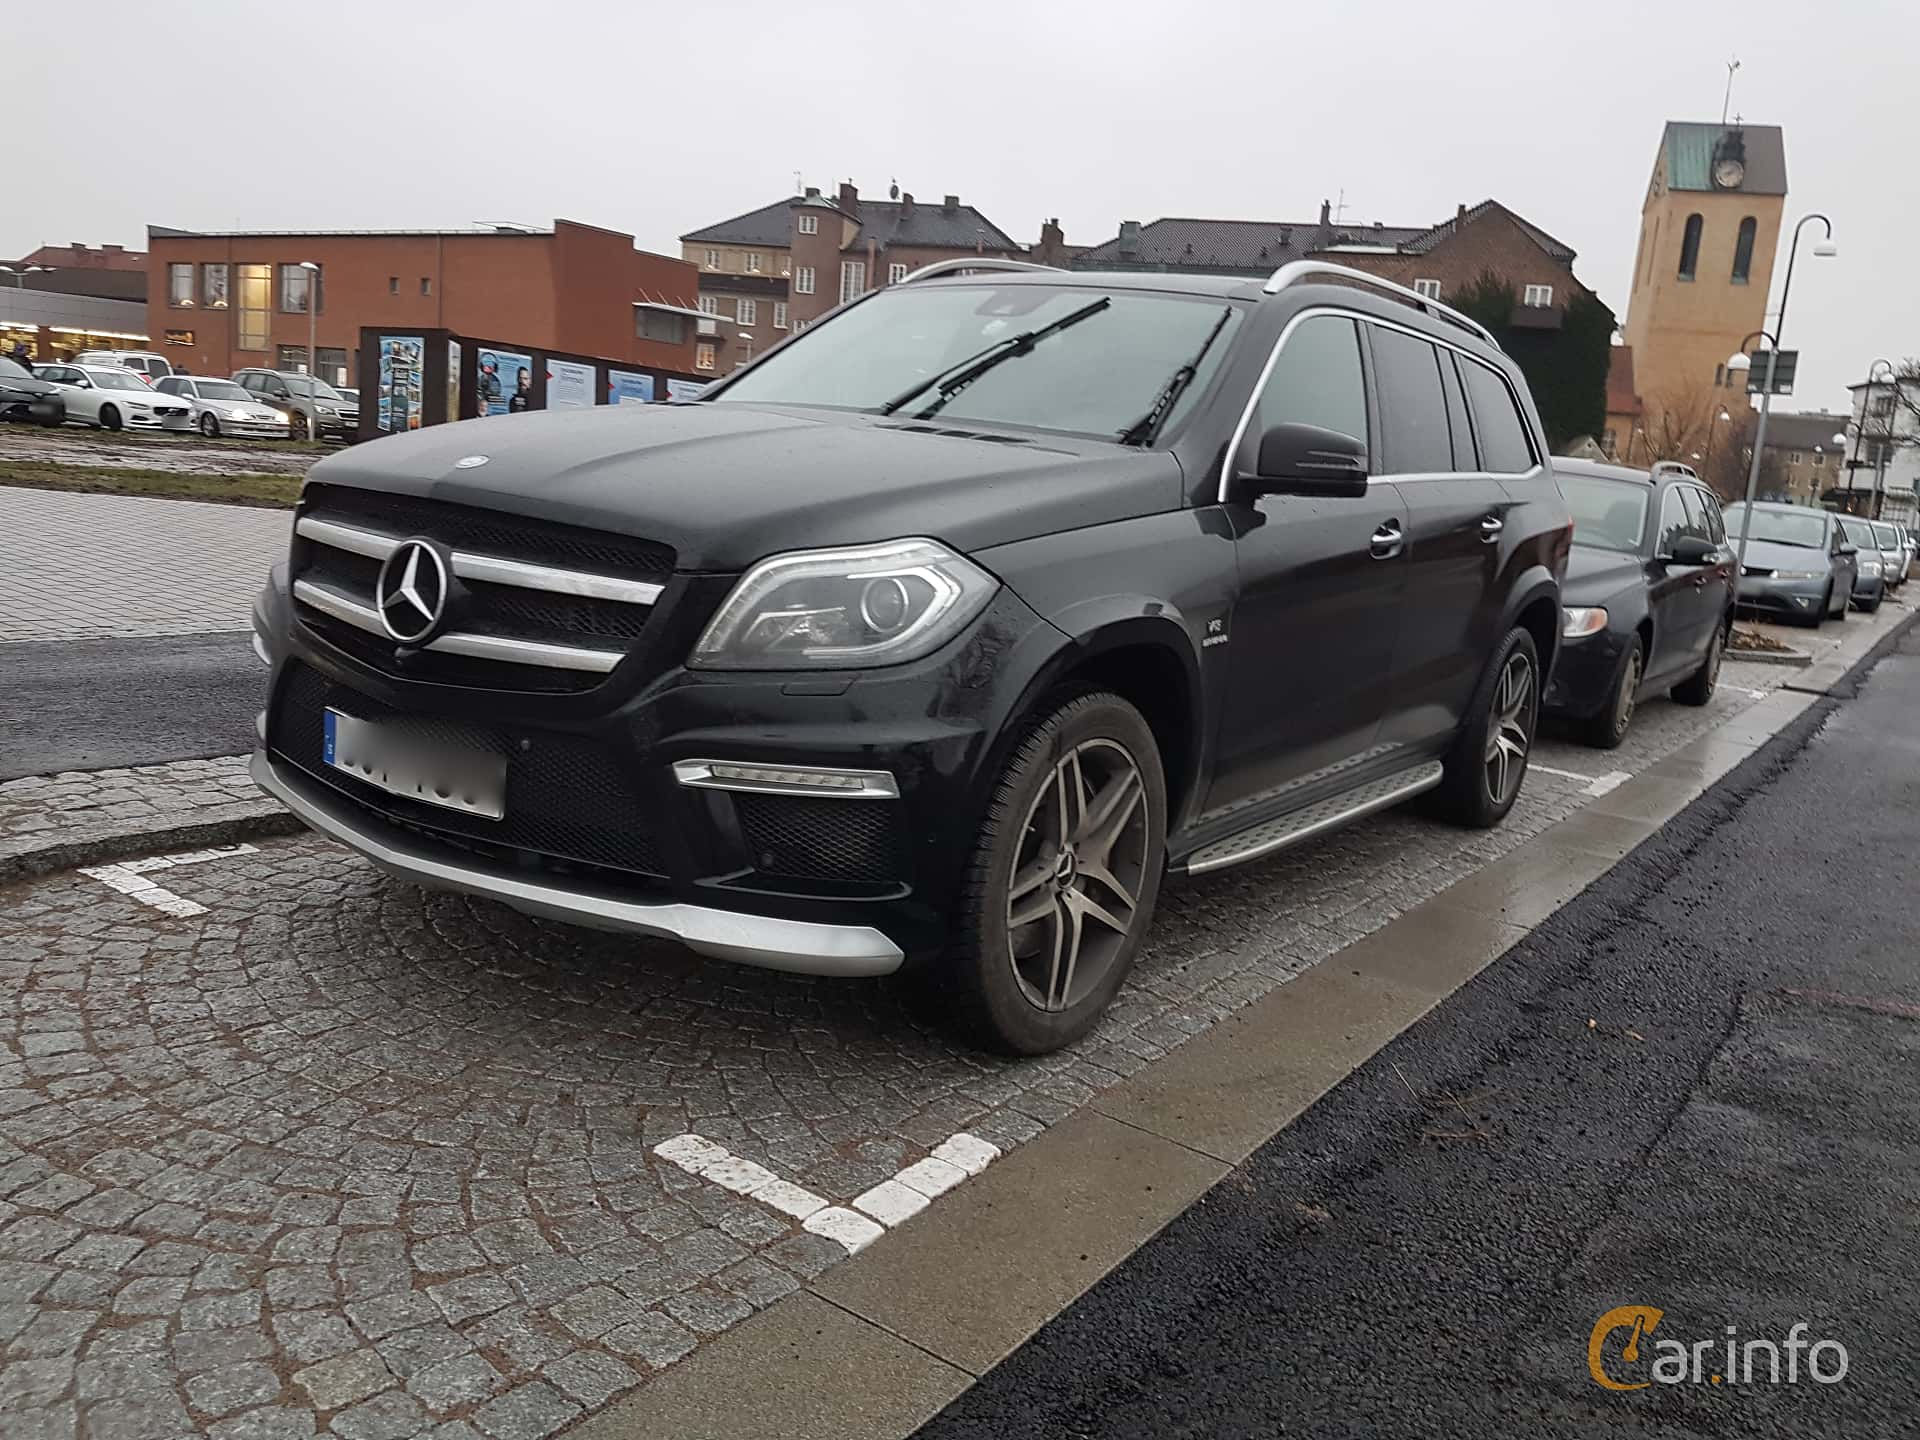 Mercedes-Benz GL 63 AMG 5.5 V8 4MATIC AMG SpeedShift Plus 7G-Tronic, 557hp, 2014